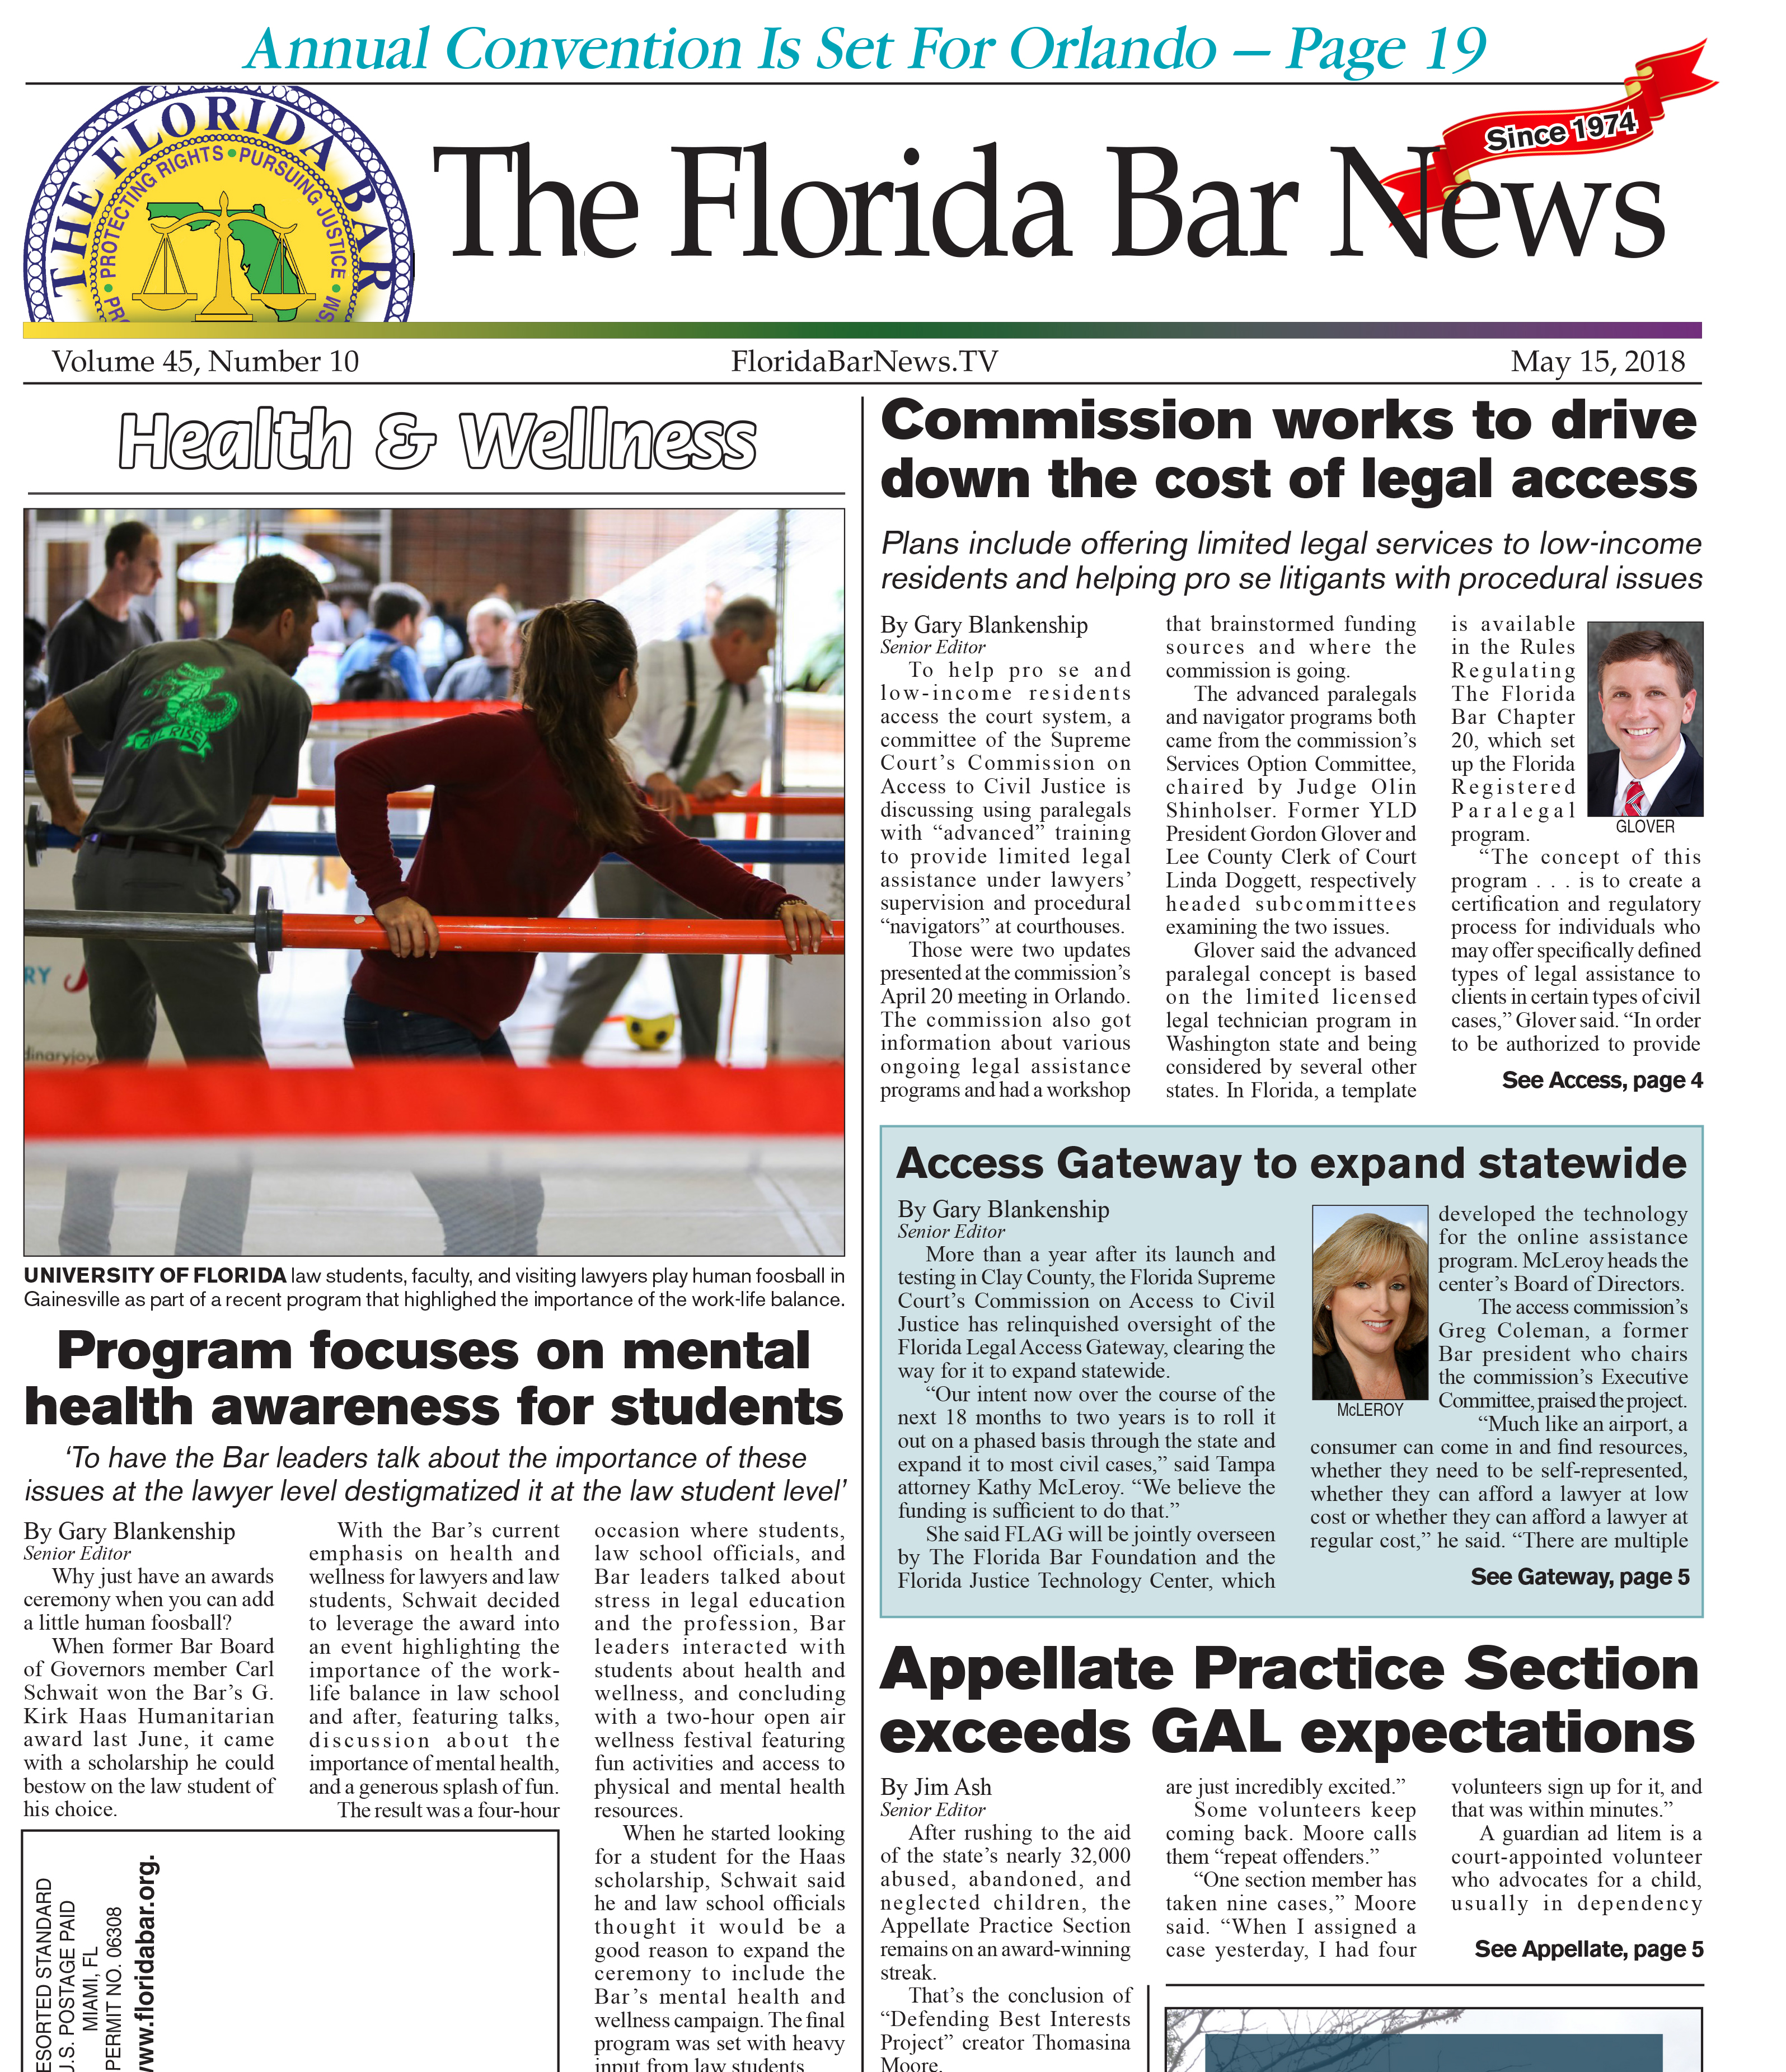 The May 15 Bar News includes: how the Access to Civil Justice Commission is working to lower legal costs, a UF event that focused on mental health awareness and much more.